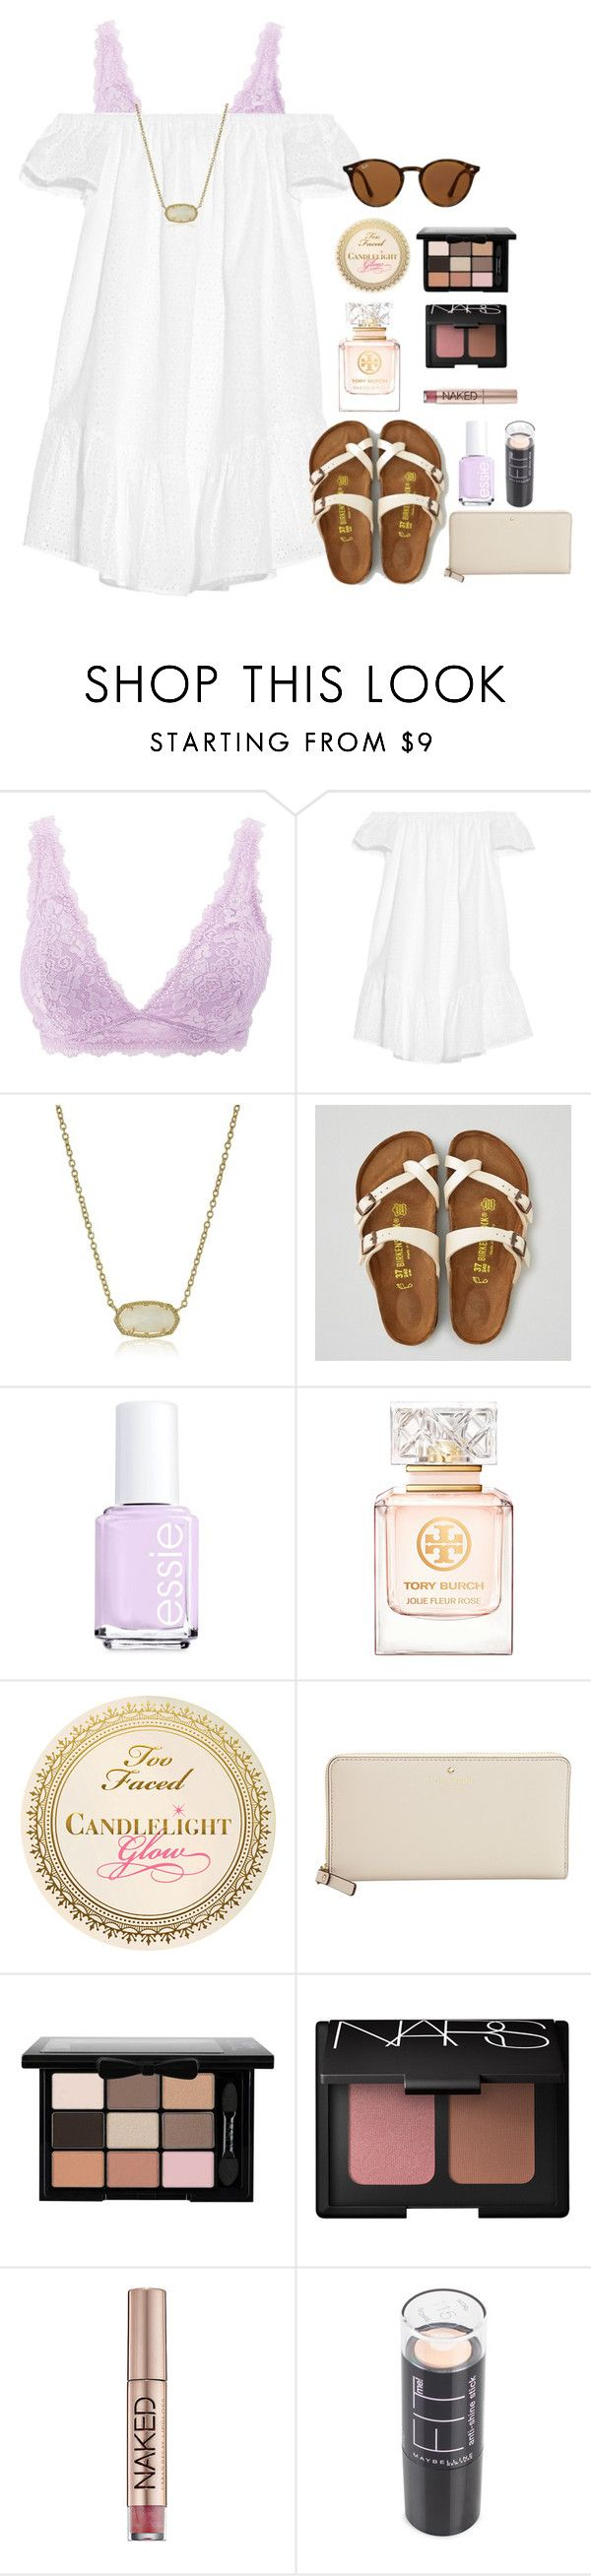 """""""contest entry #1"""" by cora-g77 ❤ liked on Polyvore featuring Charlotte Russe, Elizabeth and James, Kendra Scott, American Eagle Outfitters, Essie, Tory Burch, Kate Spade, NARS Cosmetics, Urban Decay and Maybelline"""